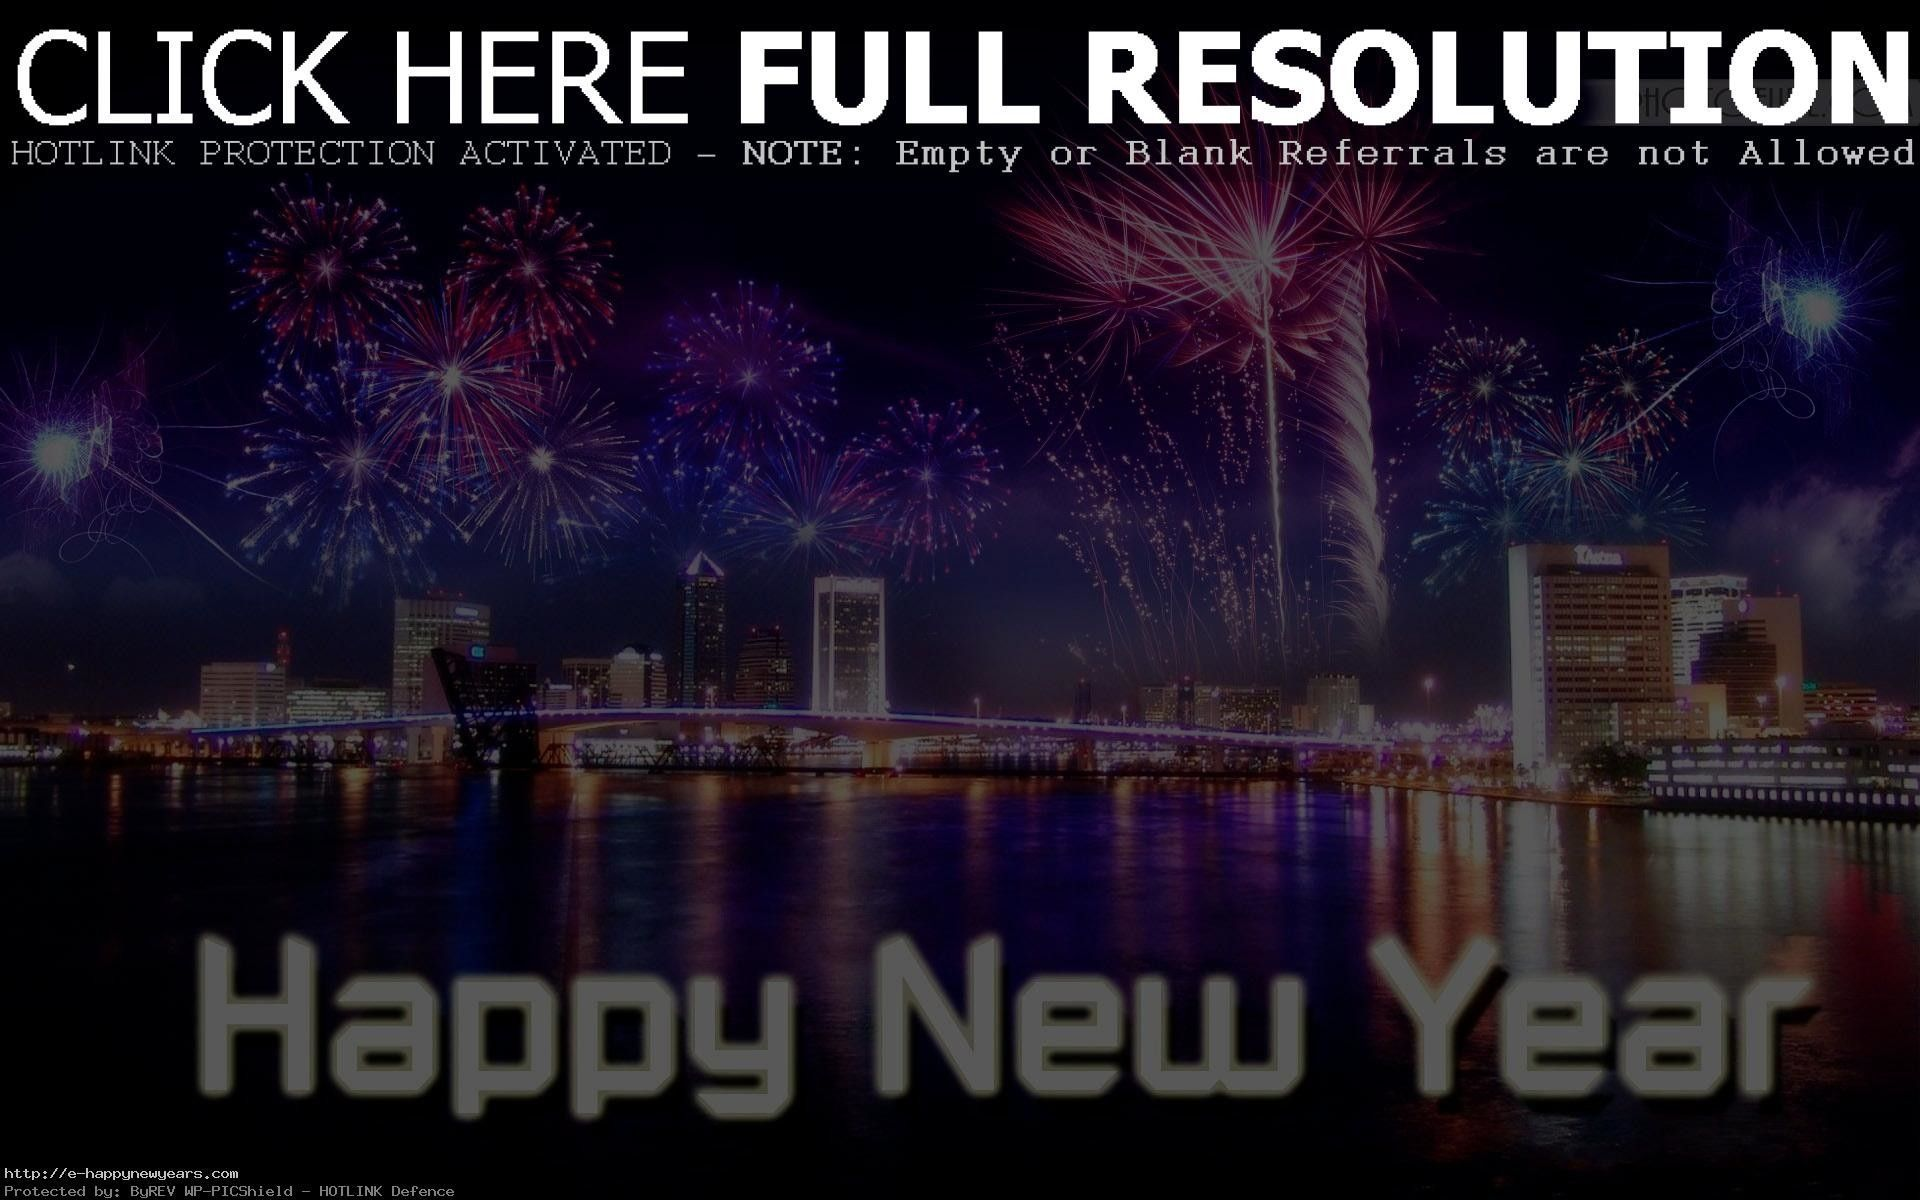 60 New Pc Wallpapers On Wallpaperplay 4k Space Desktop Backgrounds Happy New Year Wallpaper Samsung Wallpaper